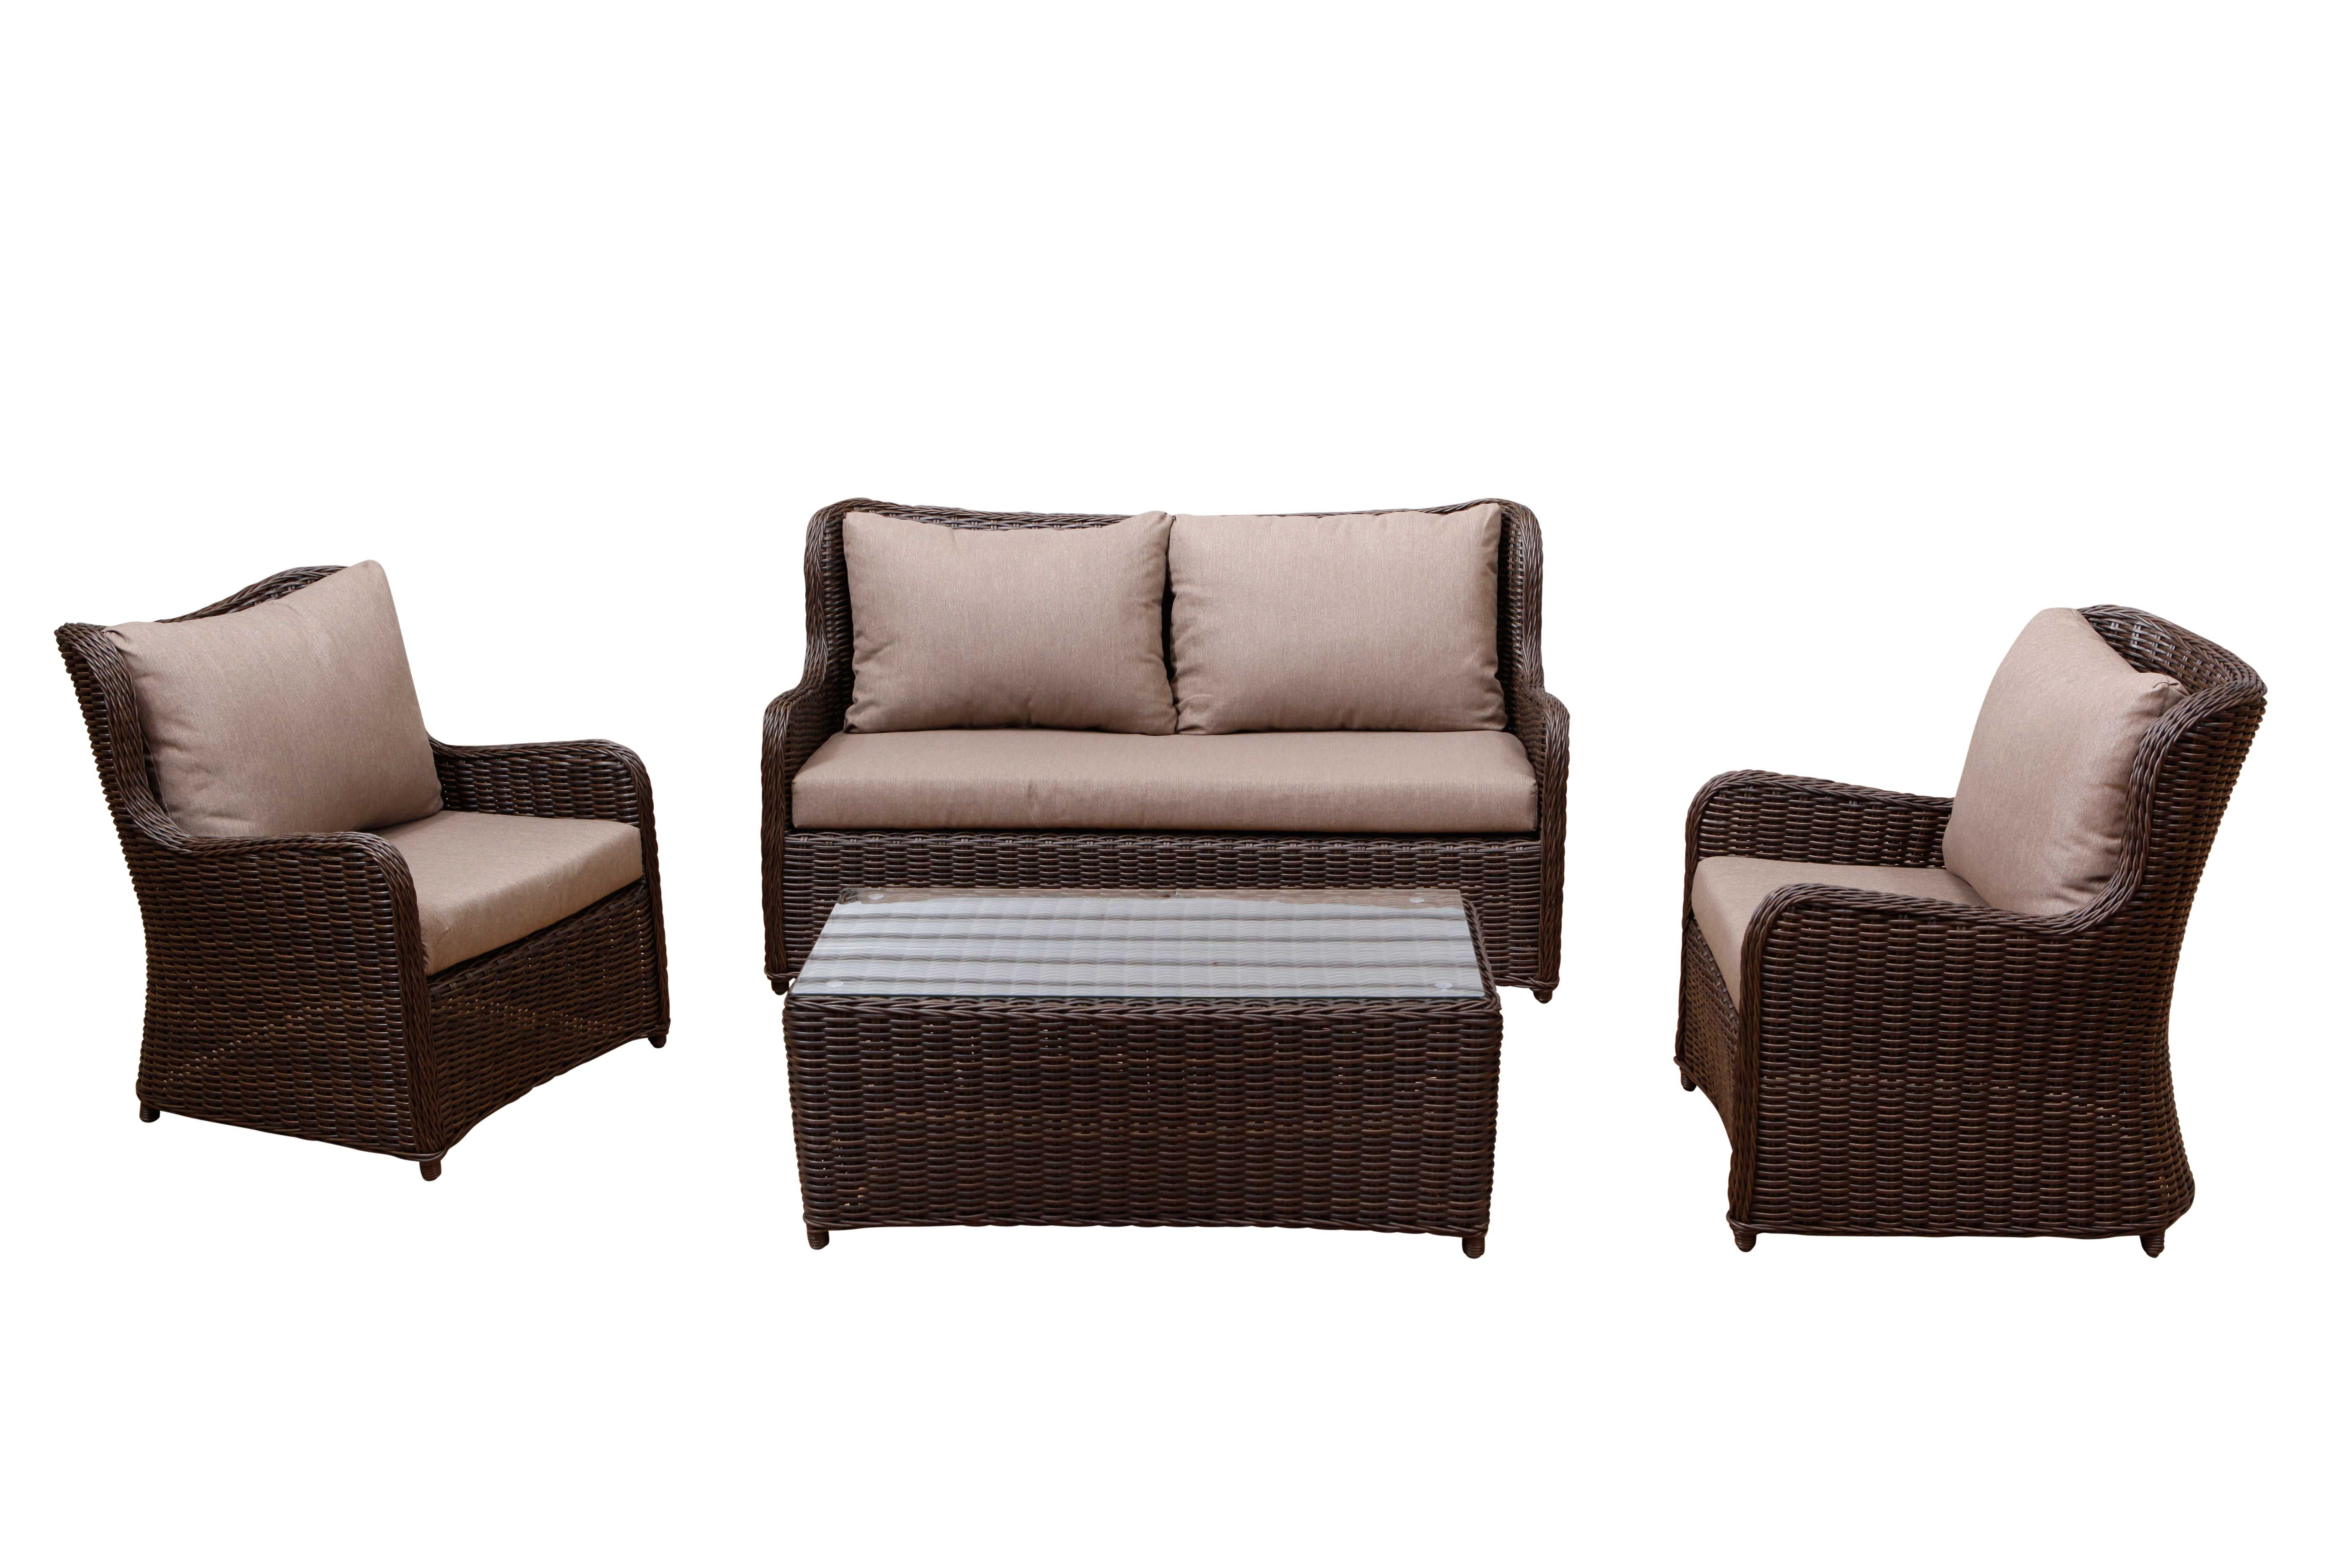 Calais Outdoor Lounge 4pce Available At Drovers Inside Out